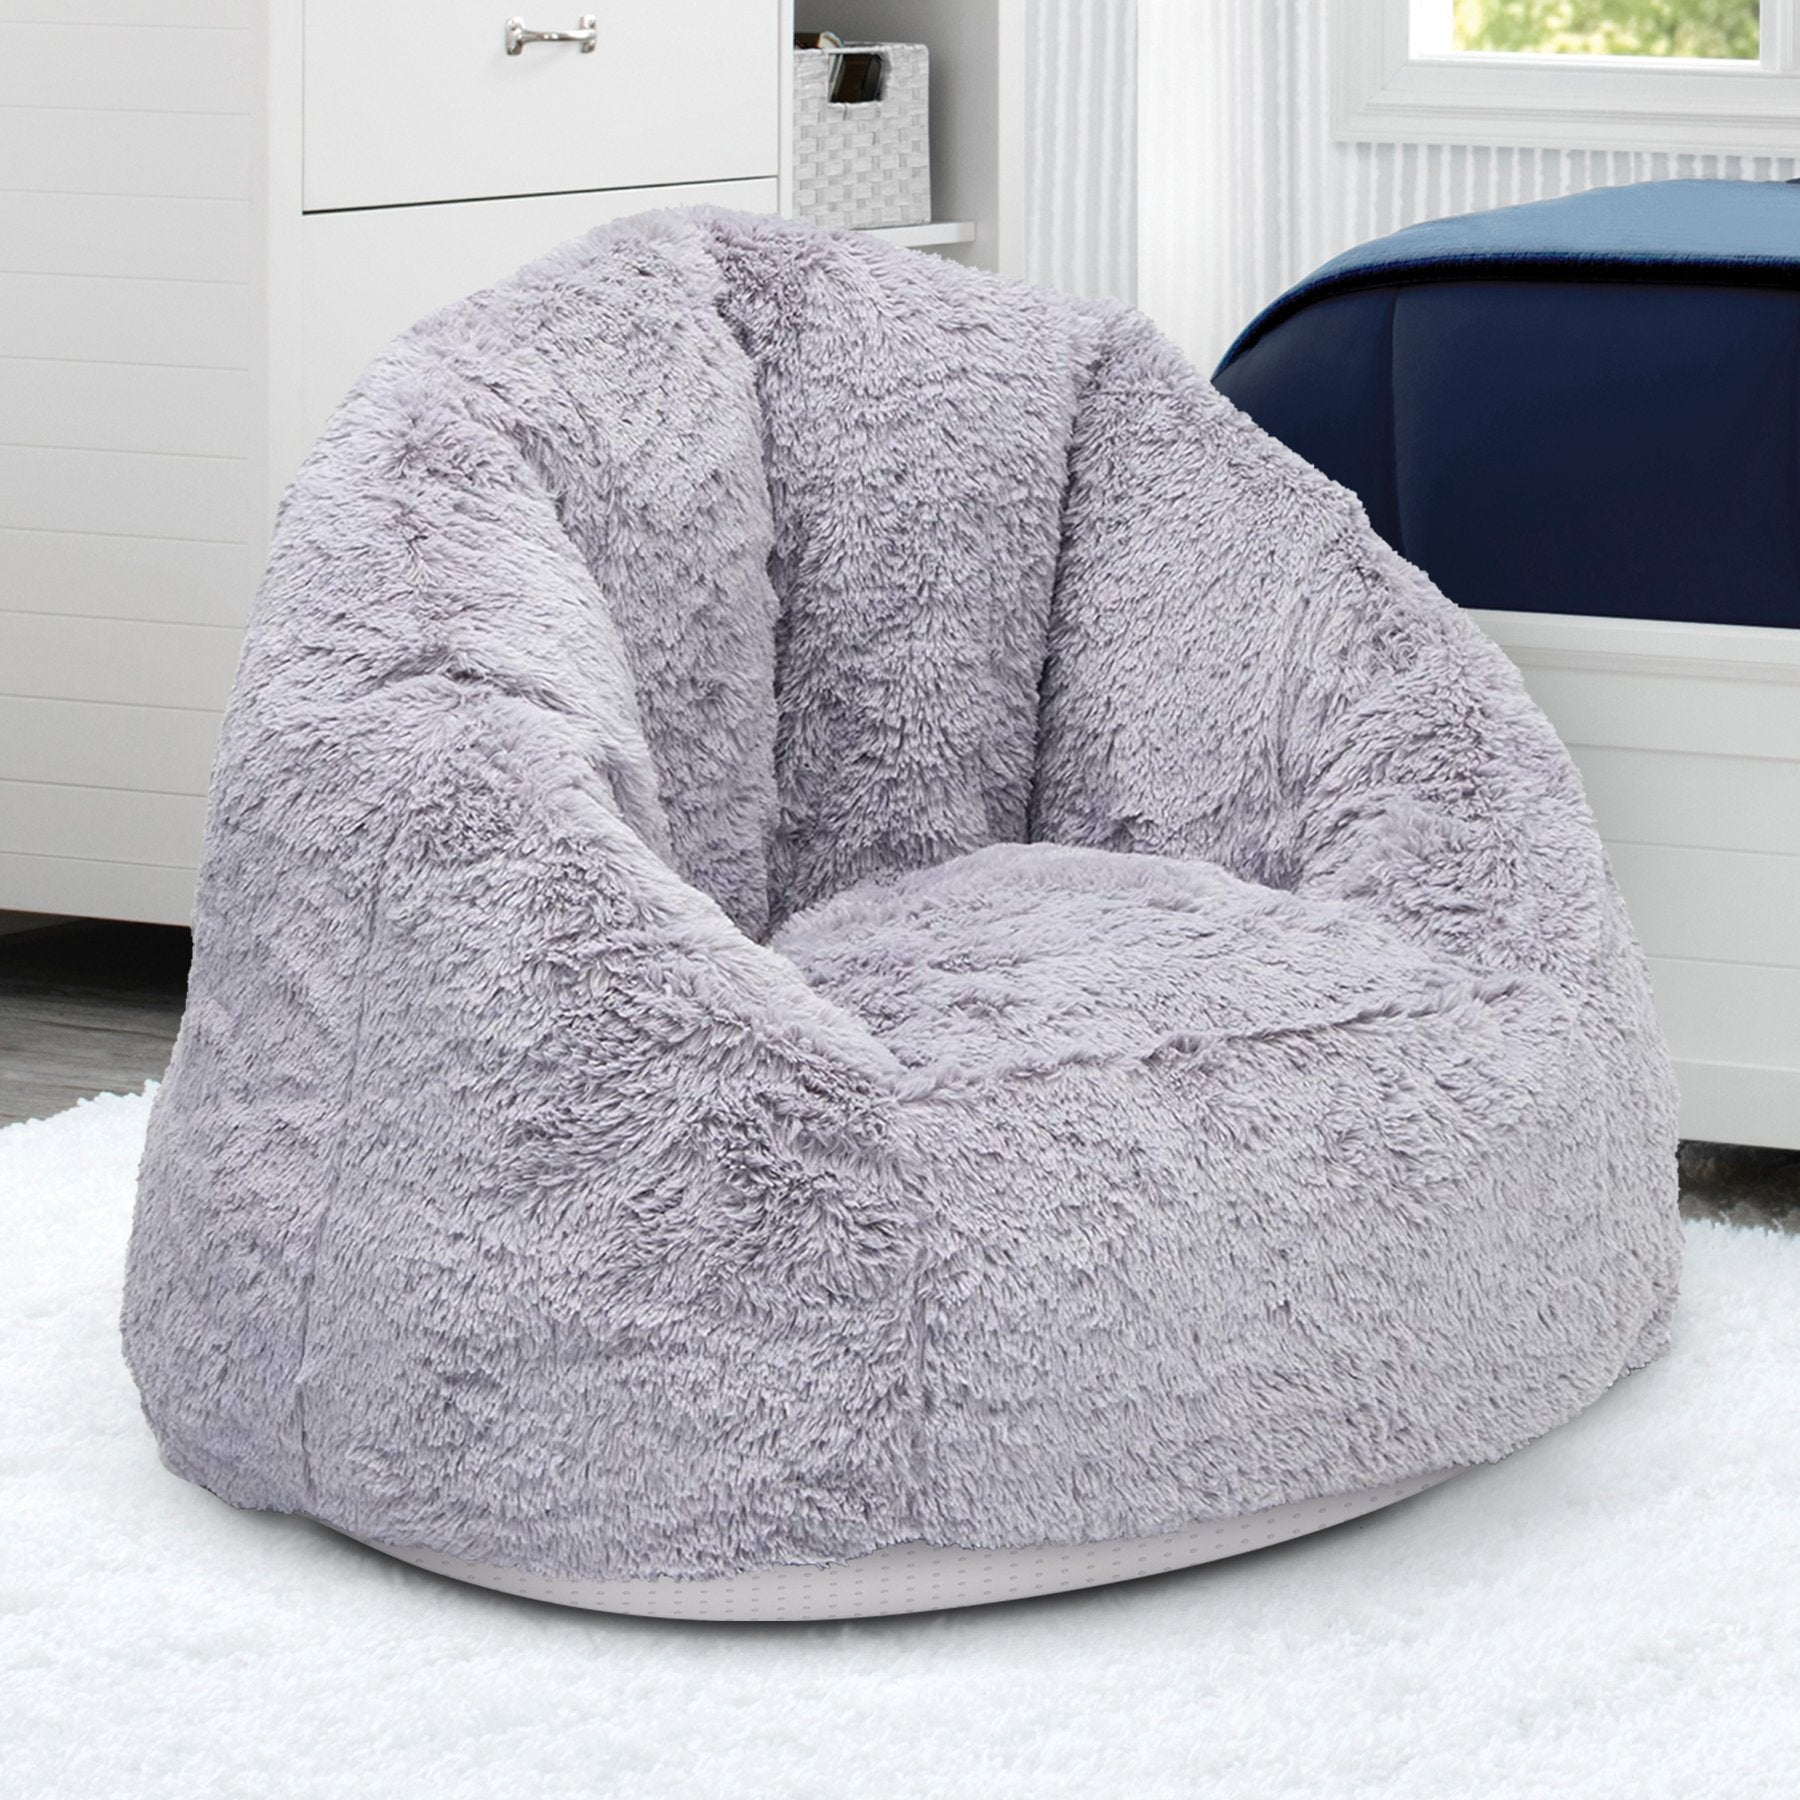 Adult Lounge Chair - Fluffy Foam Filled Chair for Living Rooms & Dorms - Better Than A Bean Bag Chair